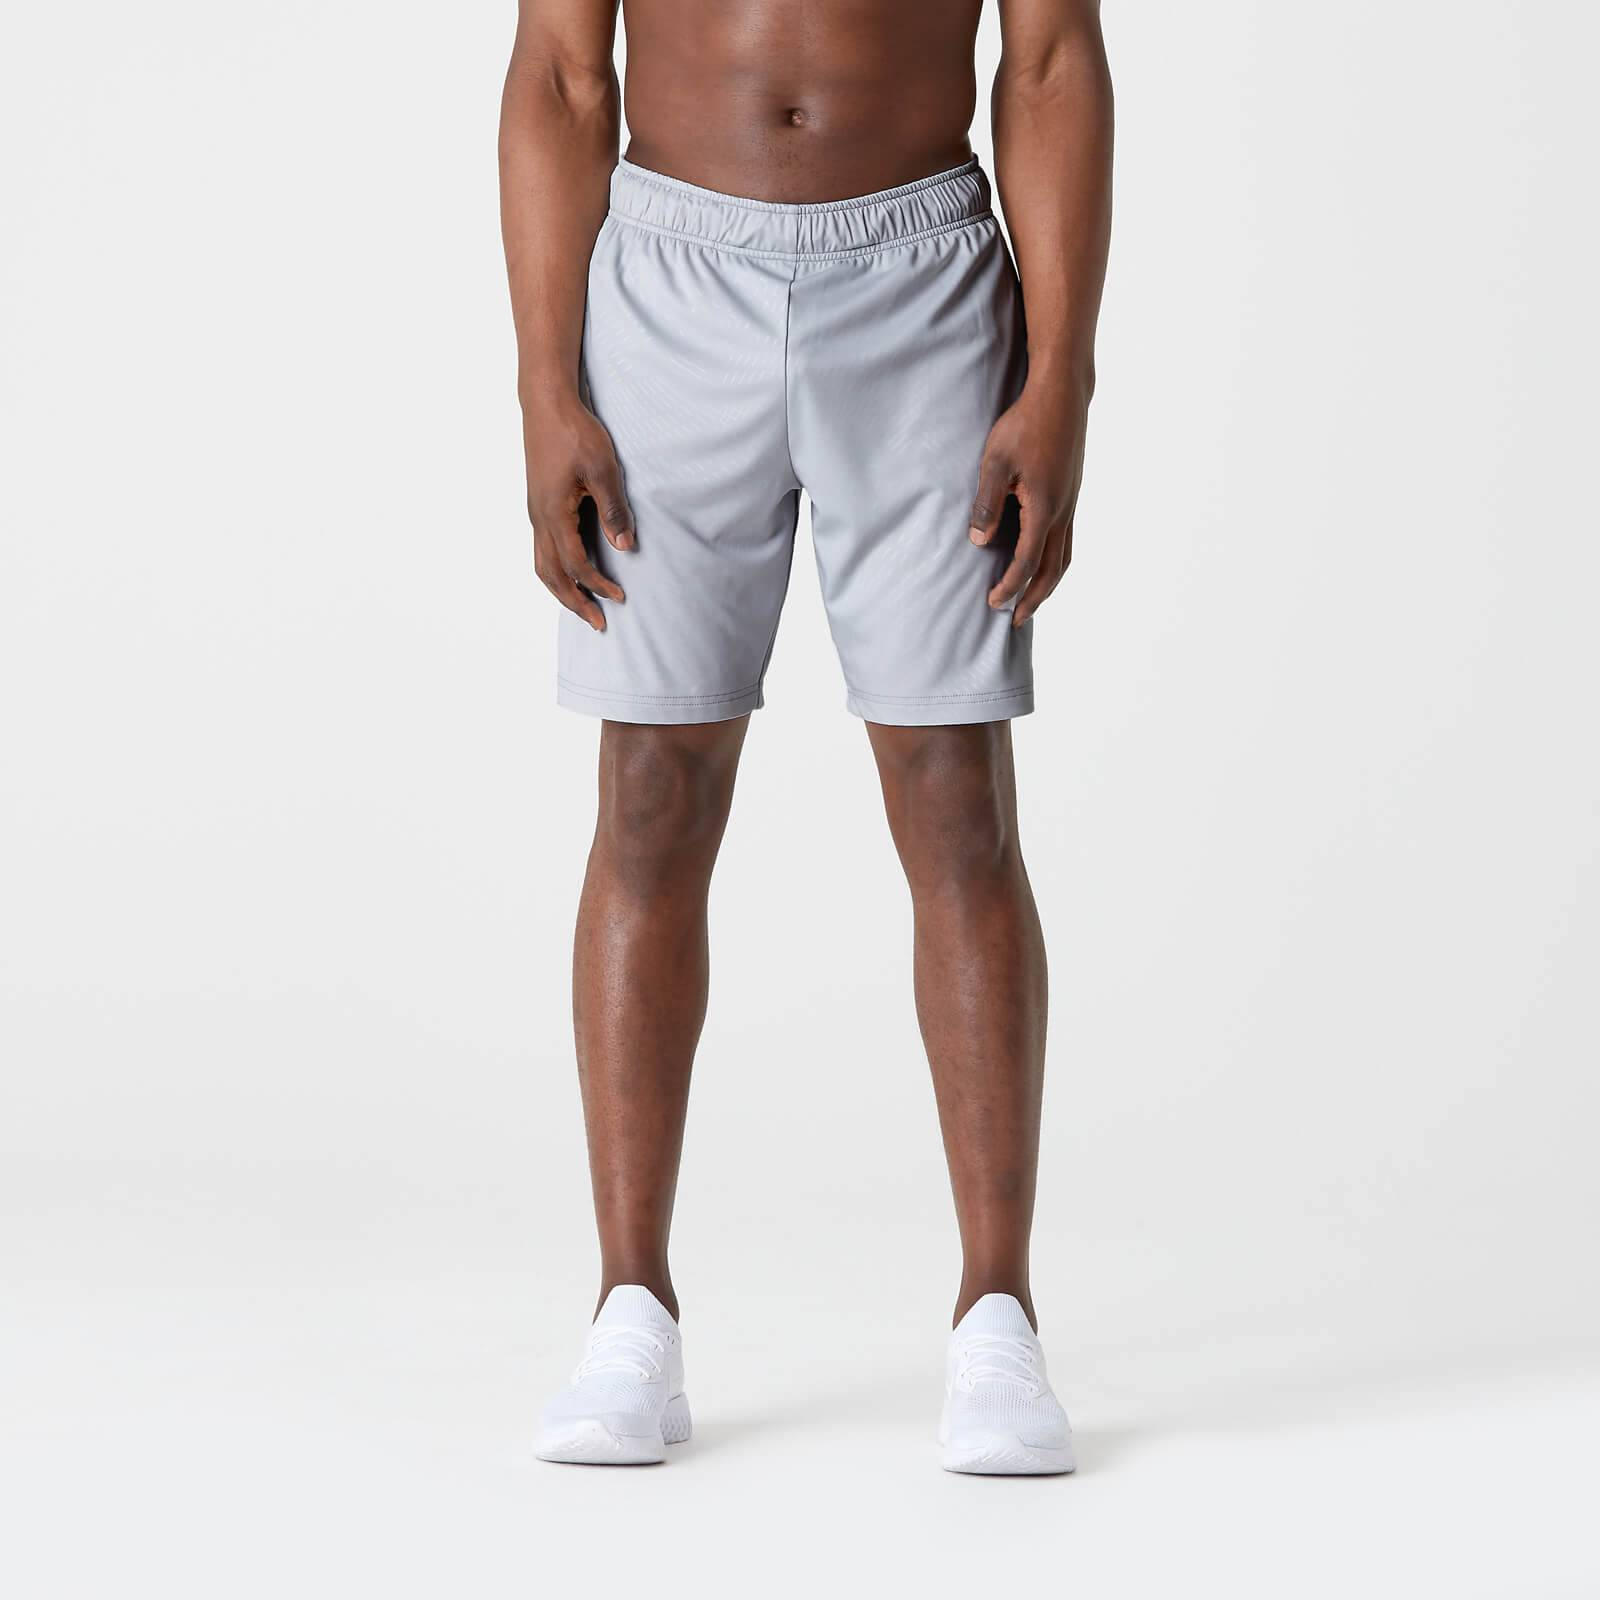 Myprotein Dry-Tech Infinity Shorts - Silver - XL - Silver